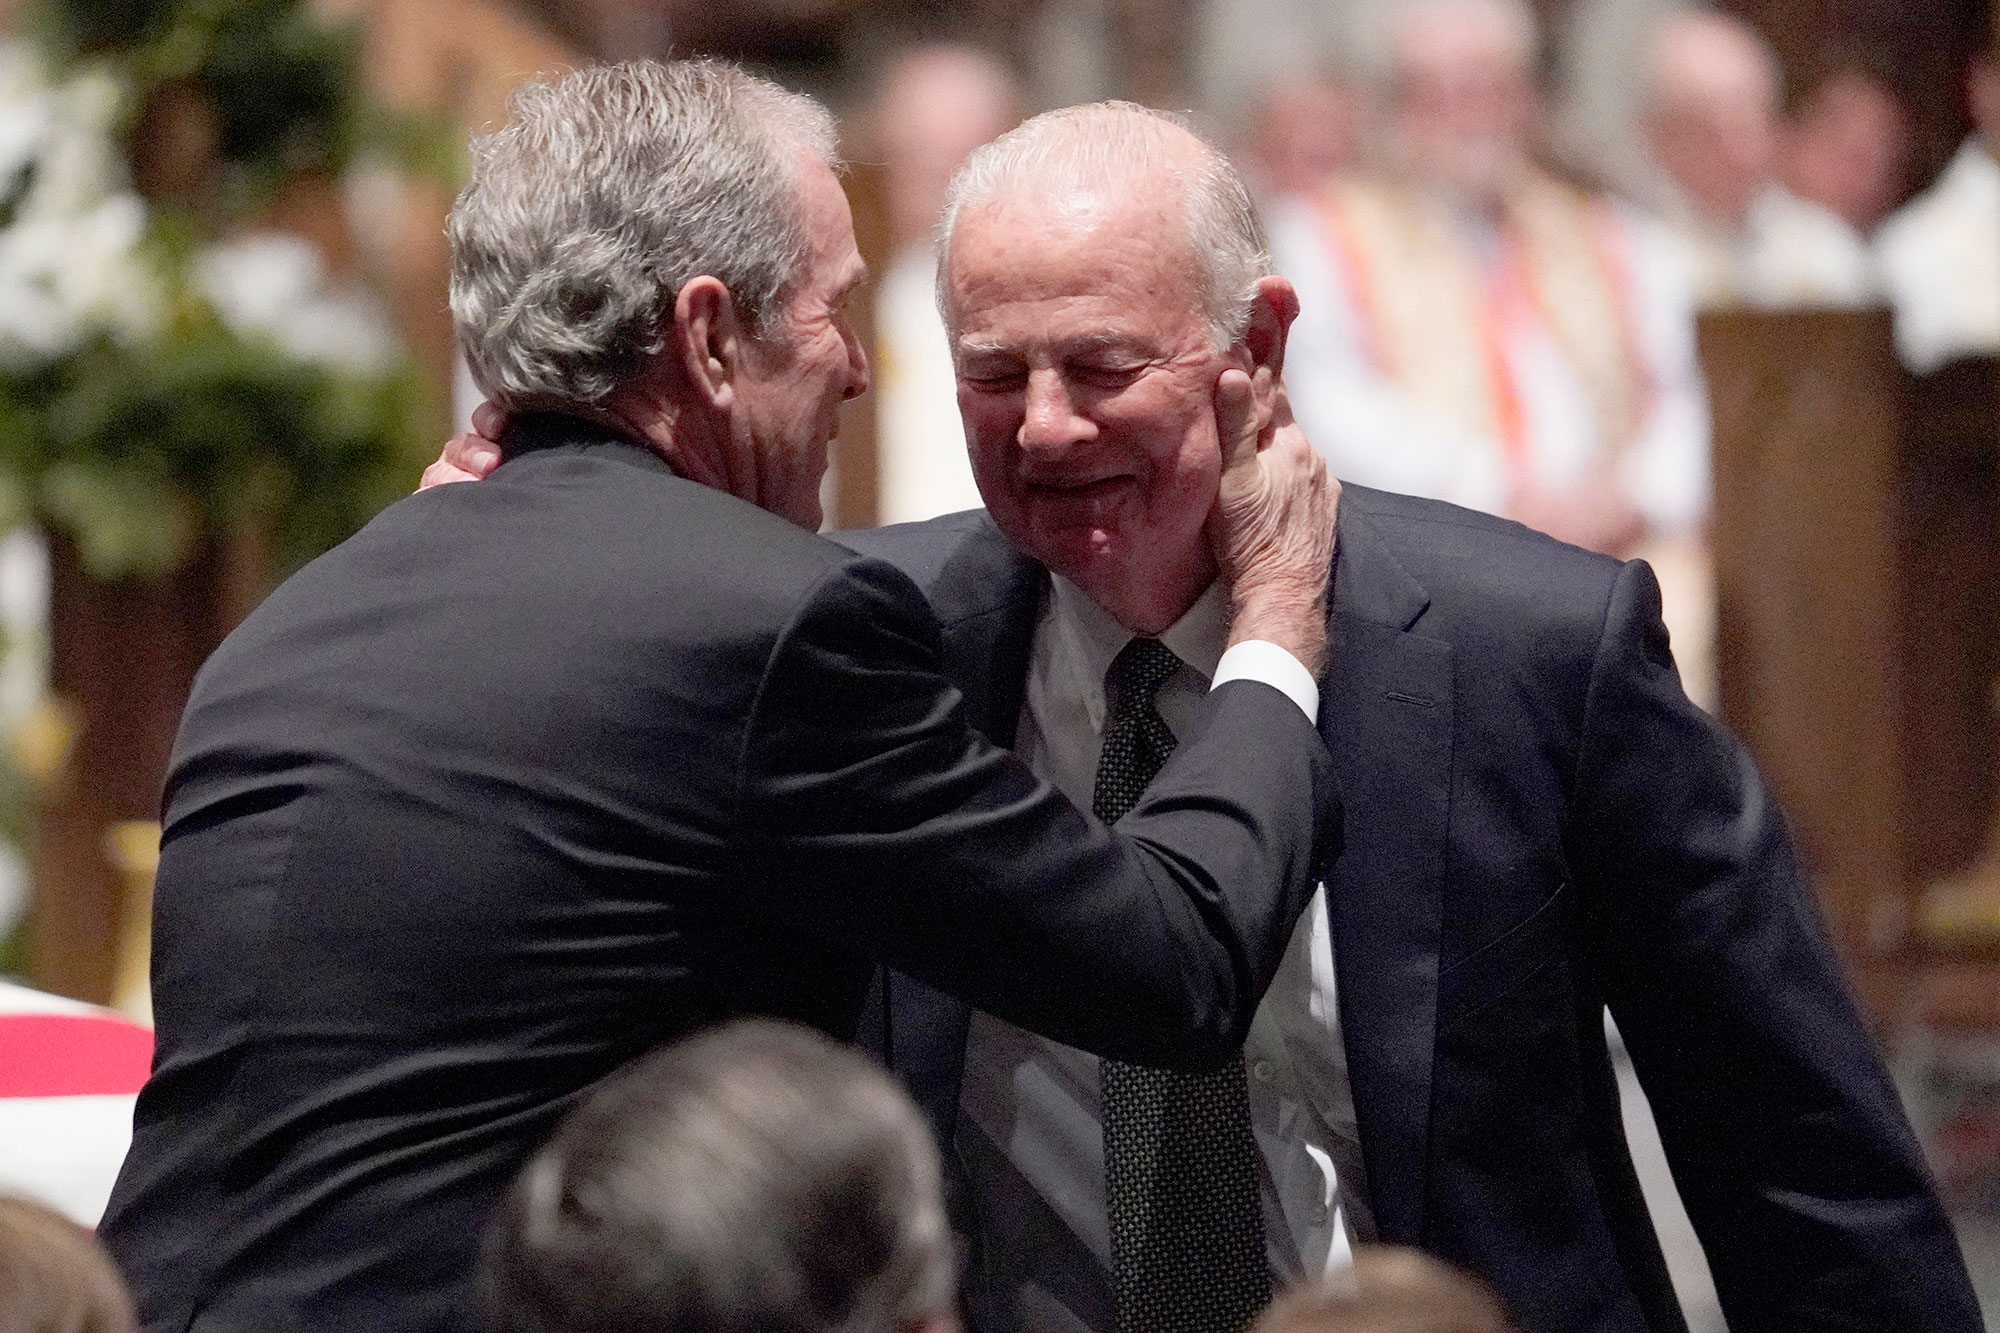 "<div class=""meta image-caption""><div class=""origin-logo origin-image none""><span>none</span></div><span class=""caption-text"">Former President George W. Bush embraces former Secretary of State James Baker, right, after he gave a eulogy during the funeral for former President George H.W. Bush. (David J. Phillip-Pool/Getty Images)</span></div>"